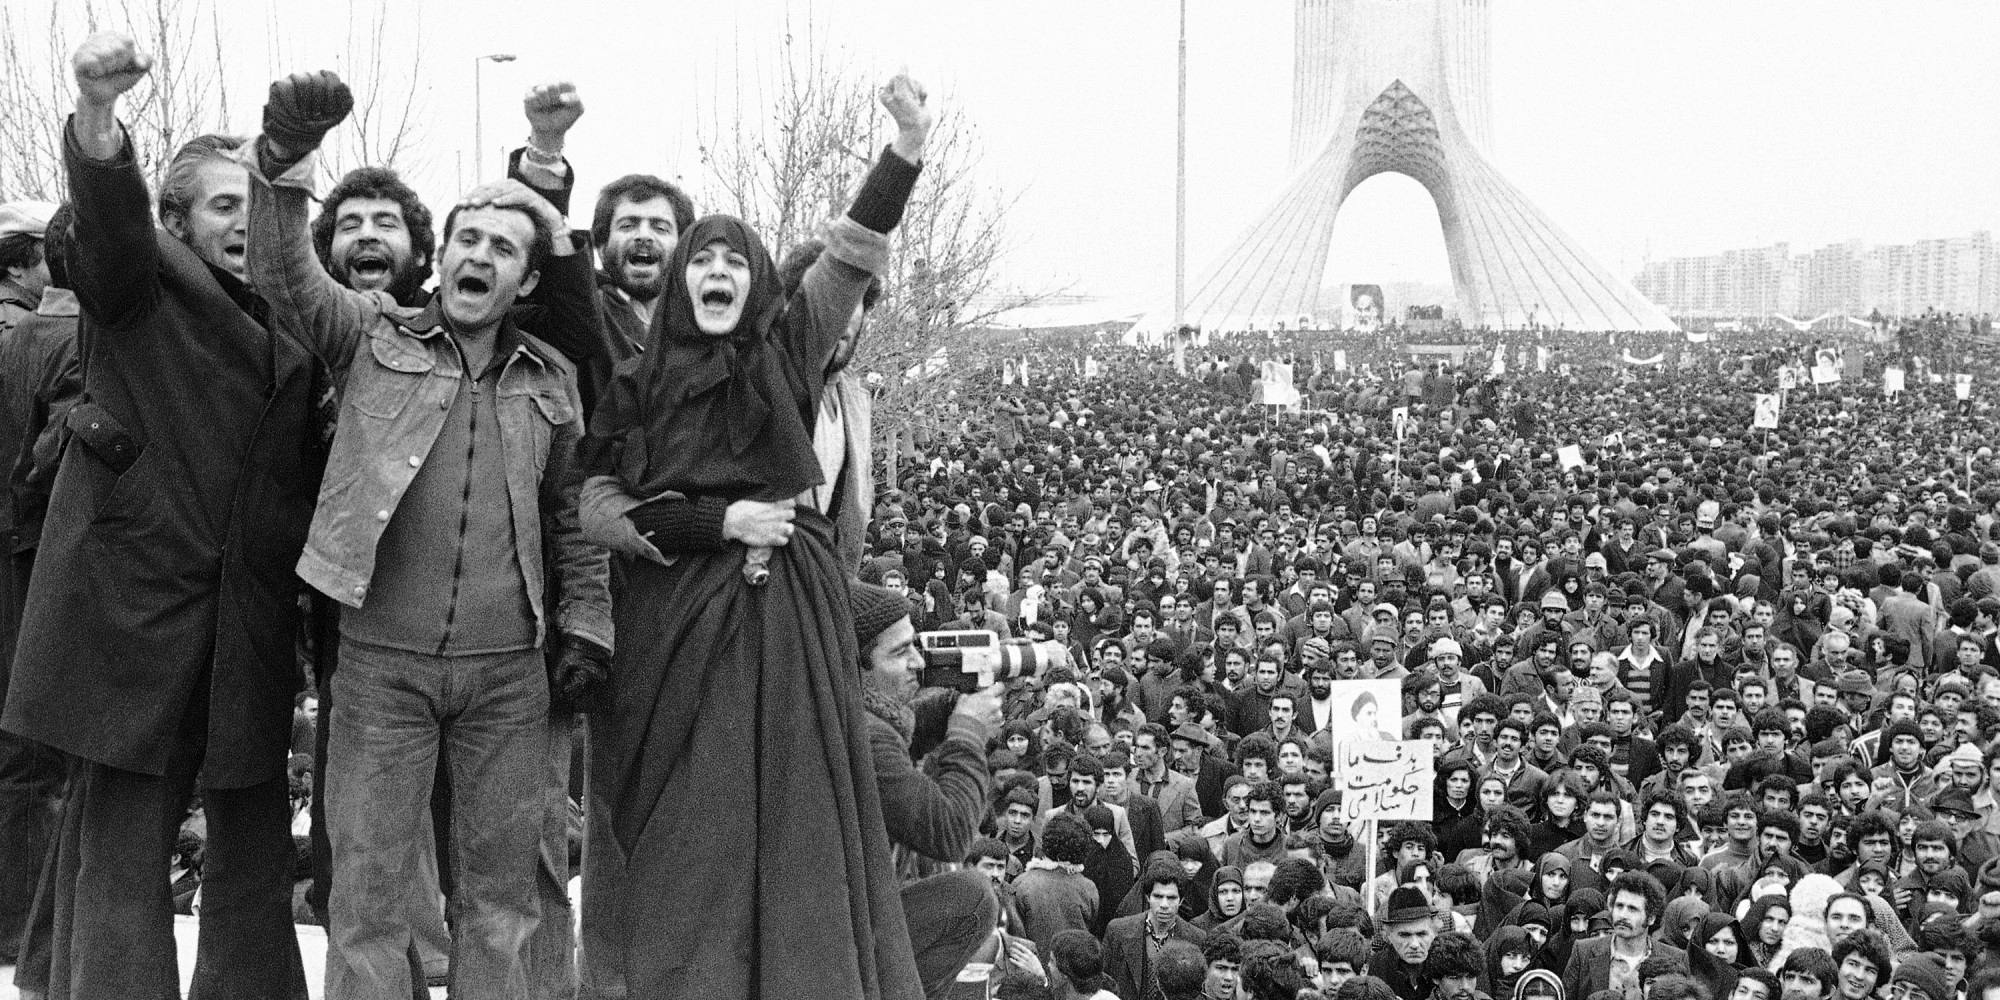 The Iranian Revolution in Shahyad Square, 1978.